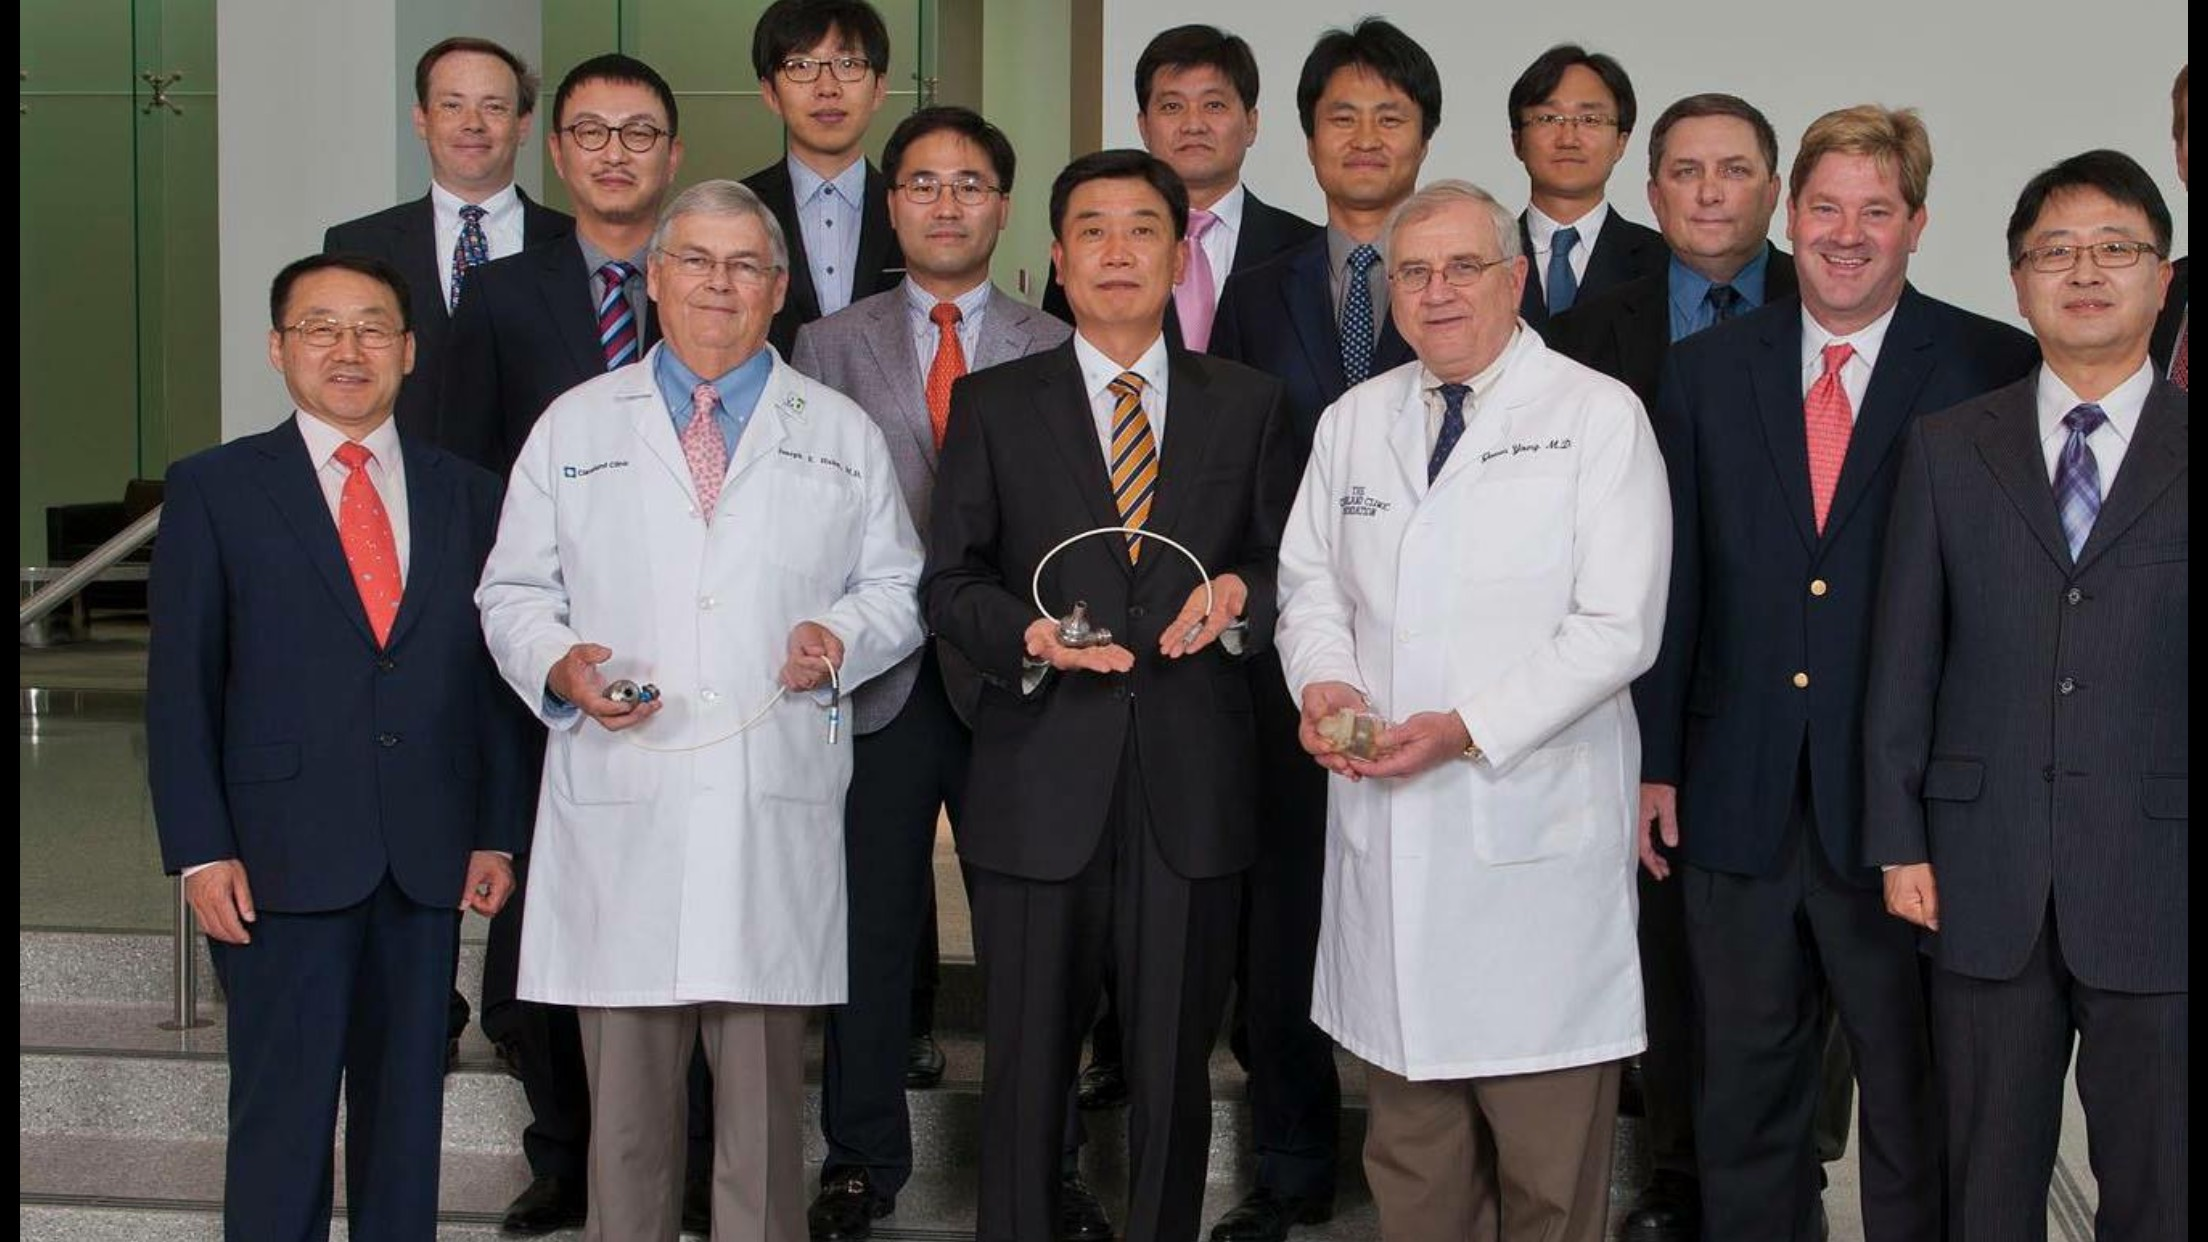 Artificial Organ Leadership Team- Cleveland Heart - Chairman, Board of Directors KH Lee JD and Chris Kim JD winning team with Cleveland Clinic doctors.